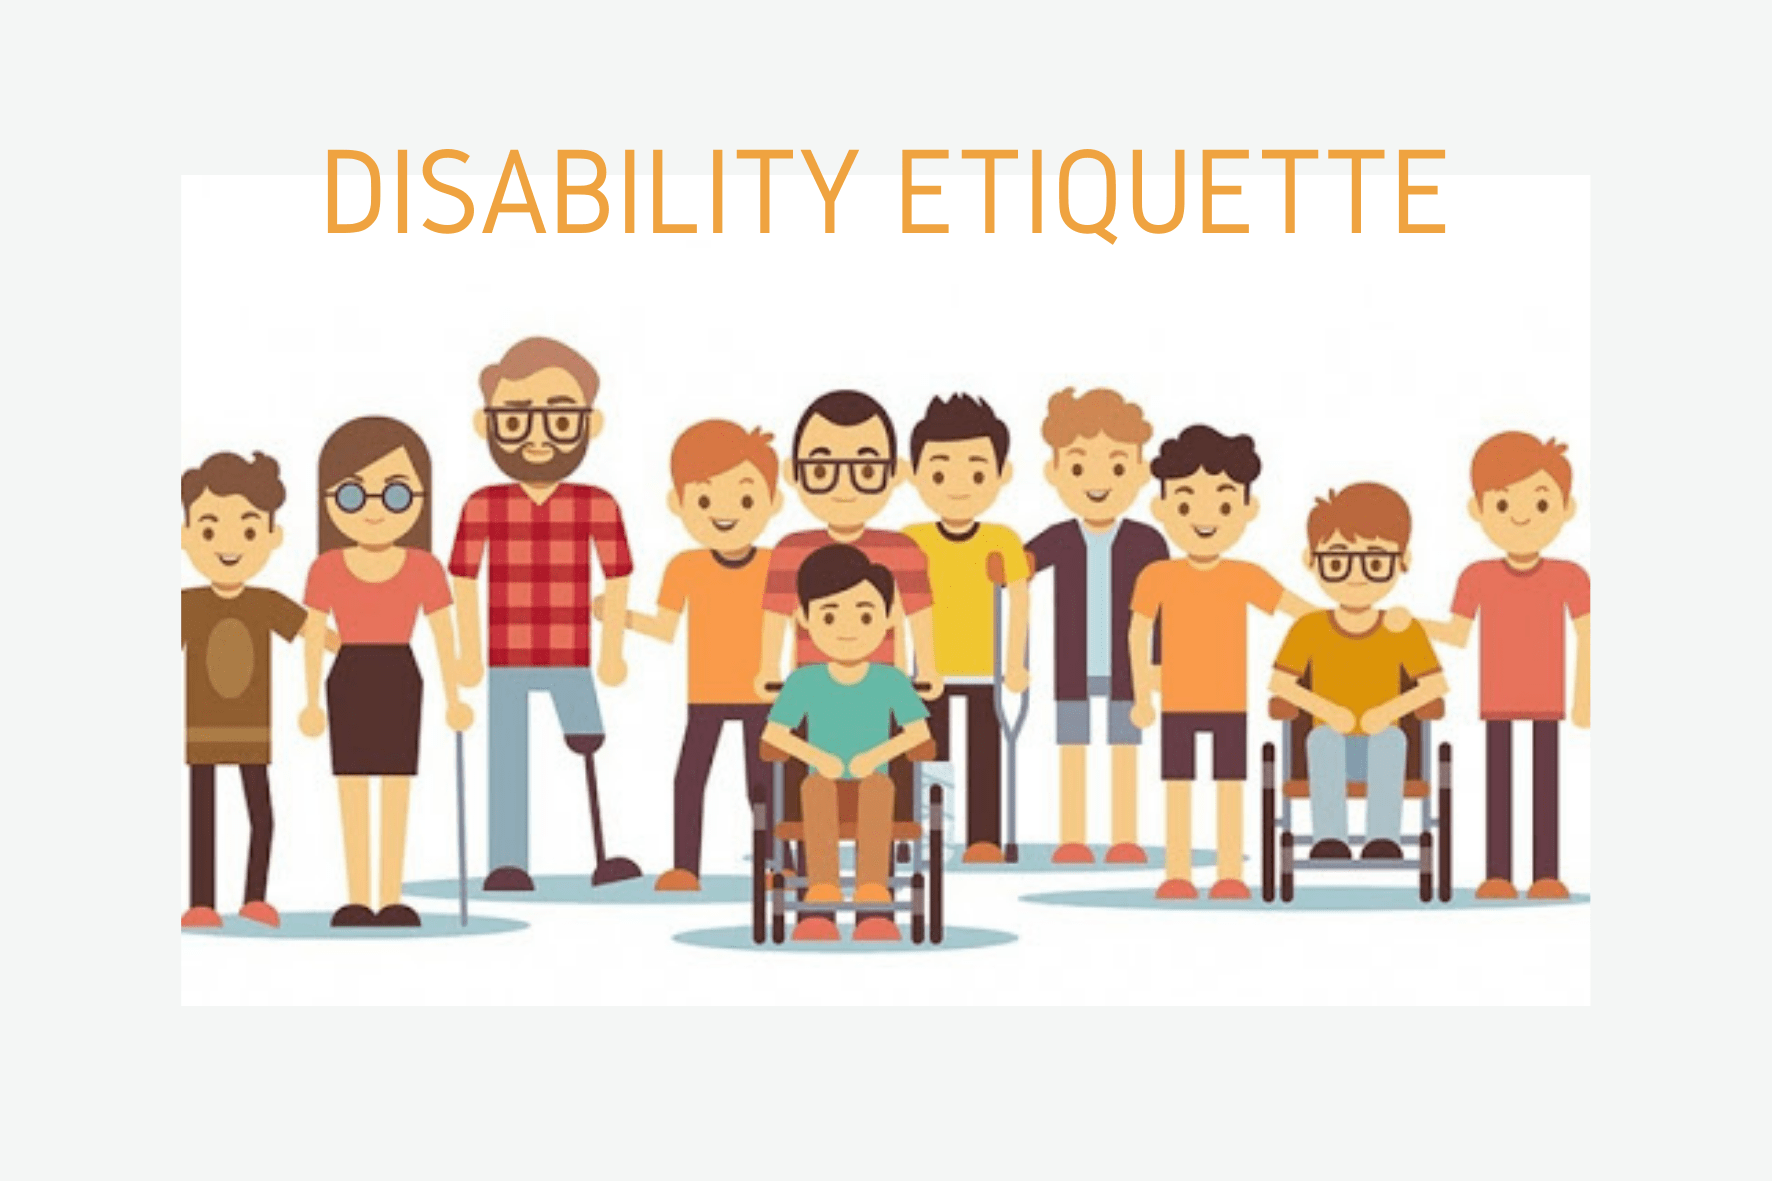 Cartoon image of individuals with varying disabilities with the words DISABILITY ETIQUETTE above them.